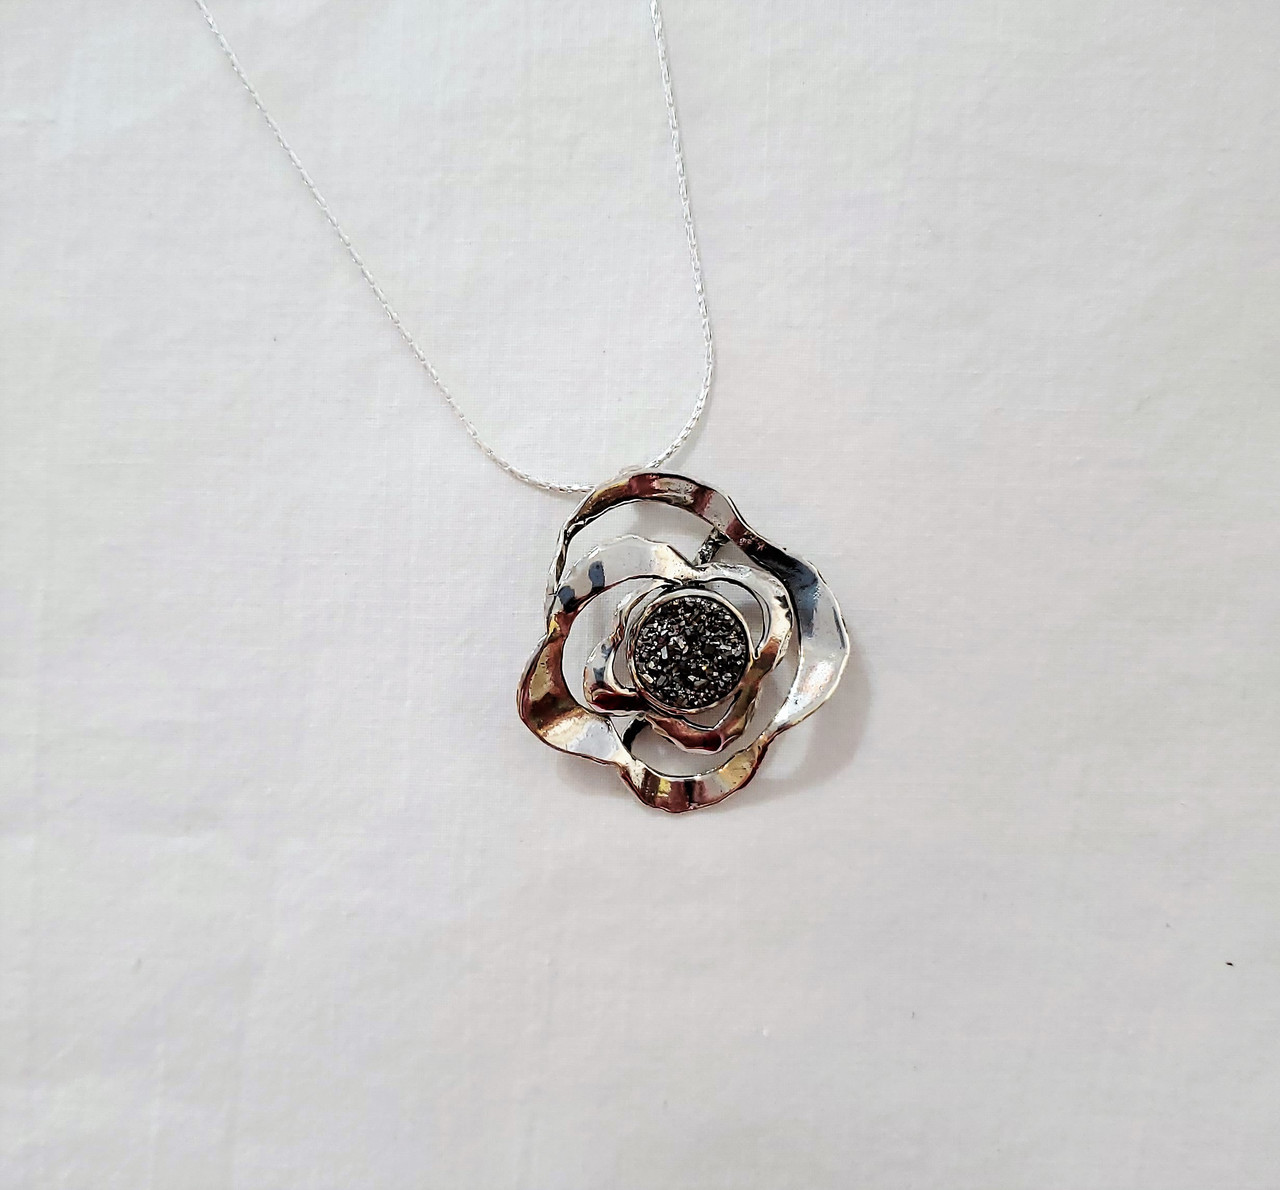 Sterling Silver Ribbon Play & Charcoal Druzy Quartz Pendant Necklace